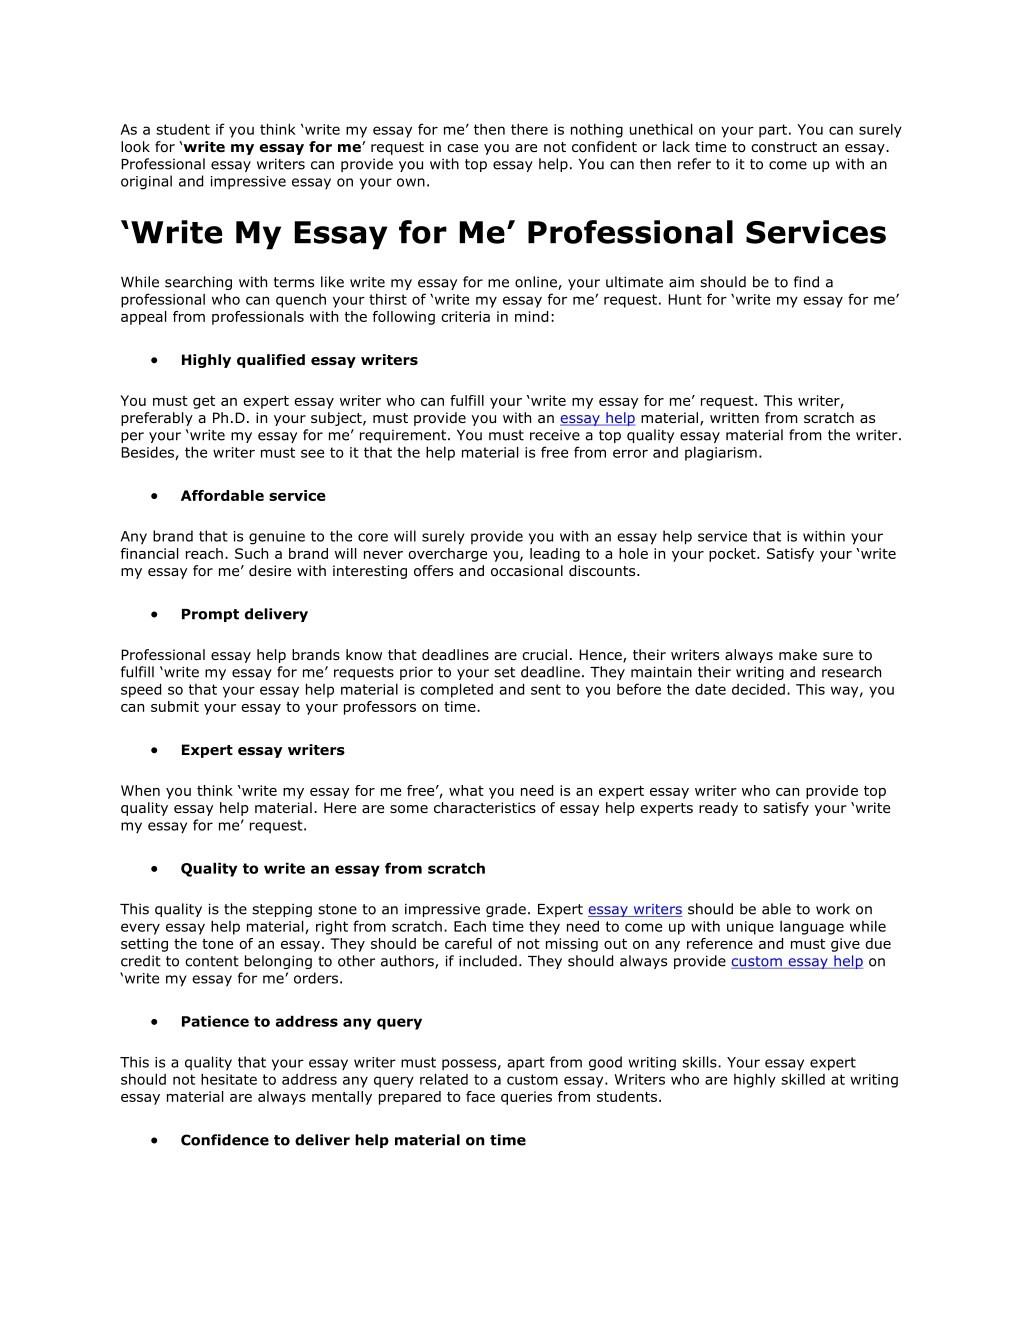 006 Essay Example Write For Me As Student If You Think My Amazing Custom Cheap Free Large